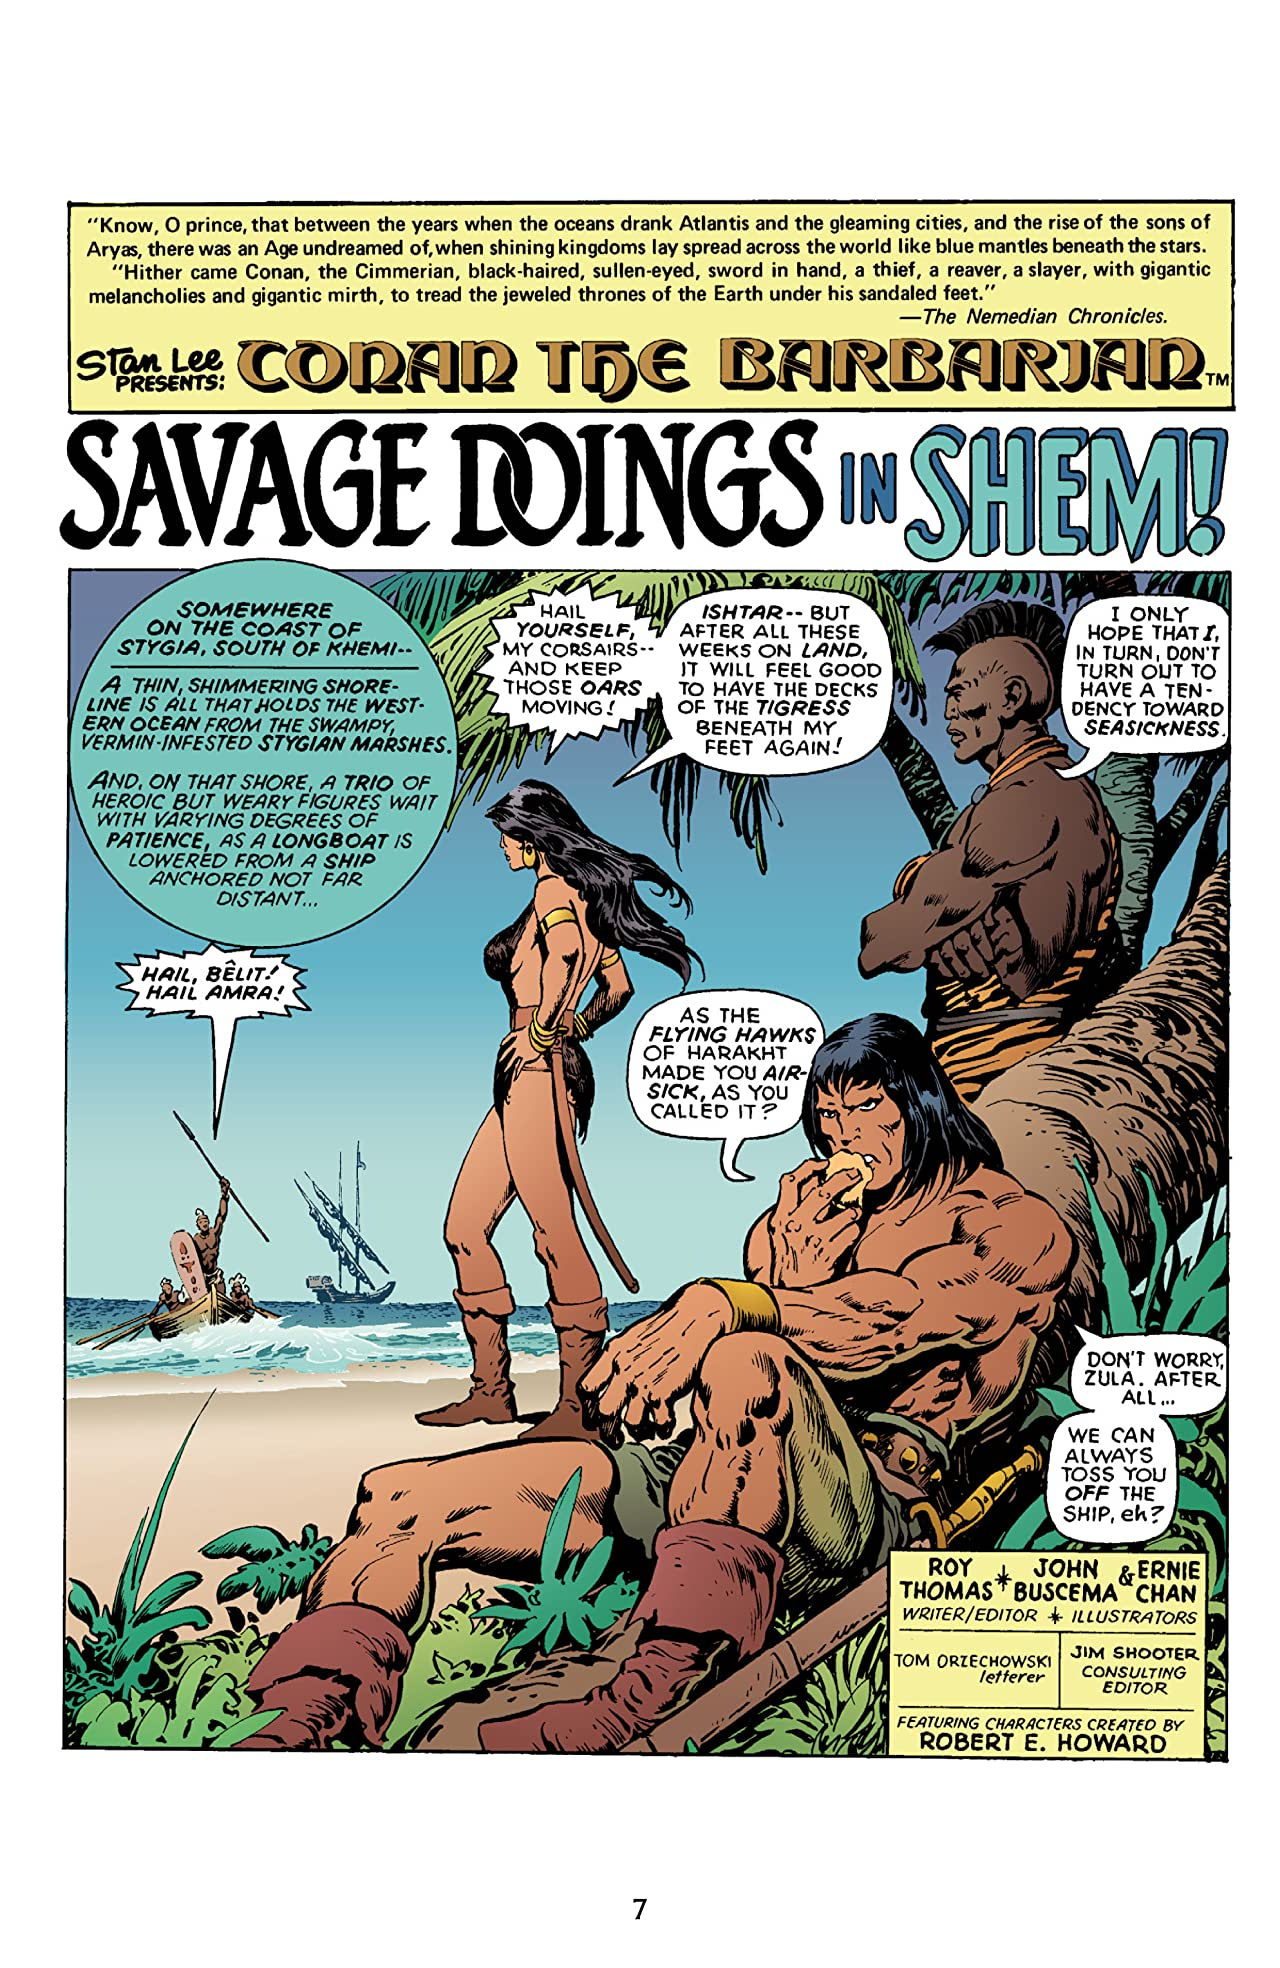 Chronicles of Conan Vol. 12: The Beast King of Abombi and Other Stories